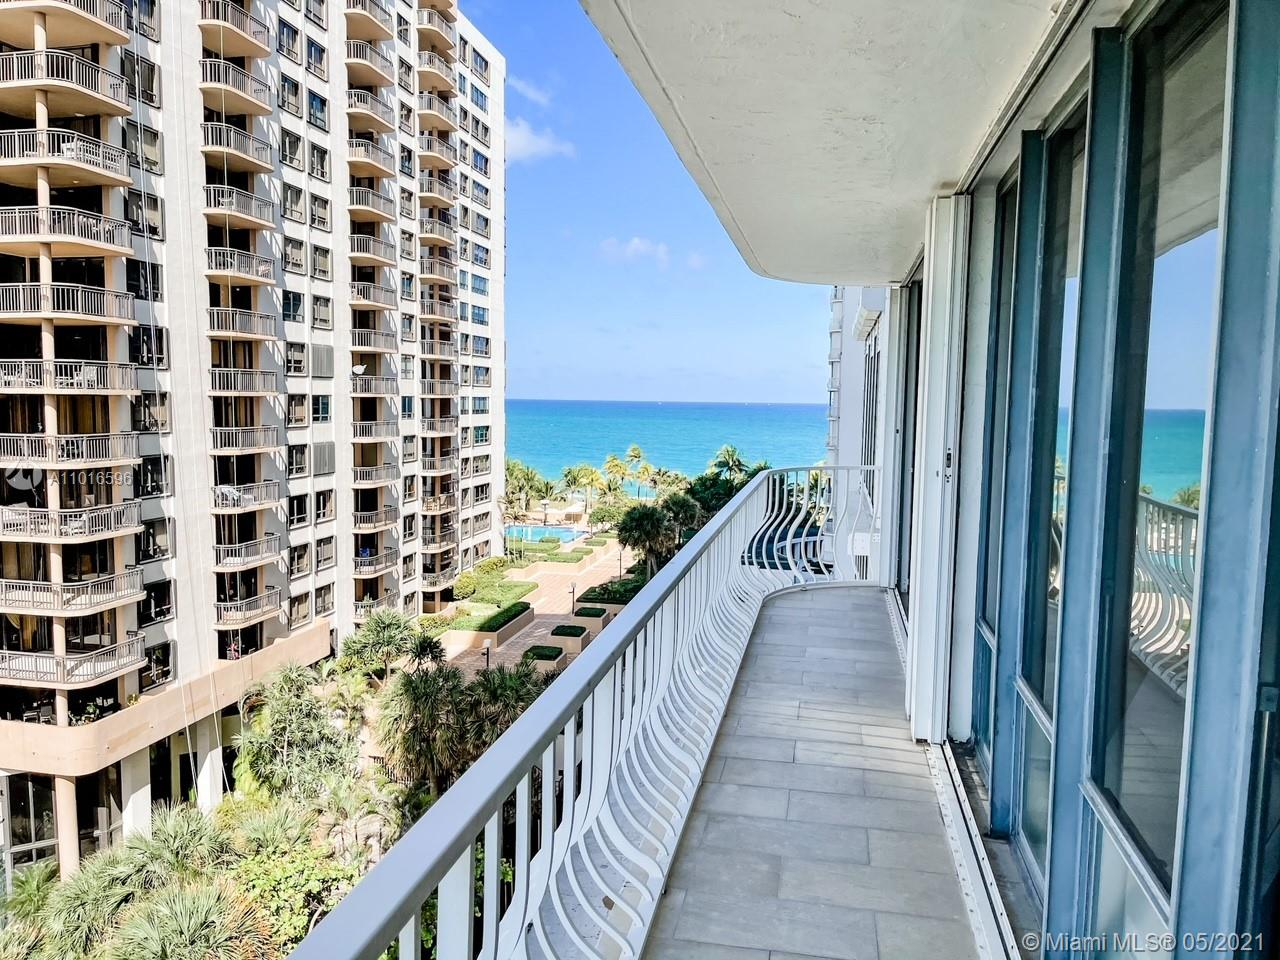 JUST REDUCED! SELLER MOTIVATED! BRING YOUR OFFERS! Beautiful corner unit apartment located on the beautiful 101 Bal Harbour building. Apartment overlooks the intracoastal, the city and partial views of the ocean. Resort style living! This impressive apt includes state of the art kitchen with natural light and top of the line appliances, marble floors throughout, huge master suite with 2 master bathrooms, 2 walk-in closets, and wrap around balcony. Office, storage and eat in kitchen, huge rooms. This prestigious building recently had a complete renovation and offers excellent amenities such as on site restaurant, fitness club, valet, party room and beach and pool service, hotel rooms for your guests. SOLD AS IS.